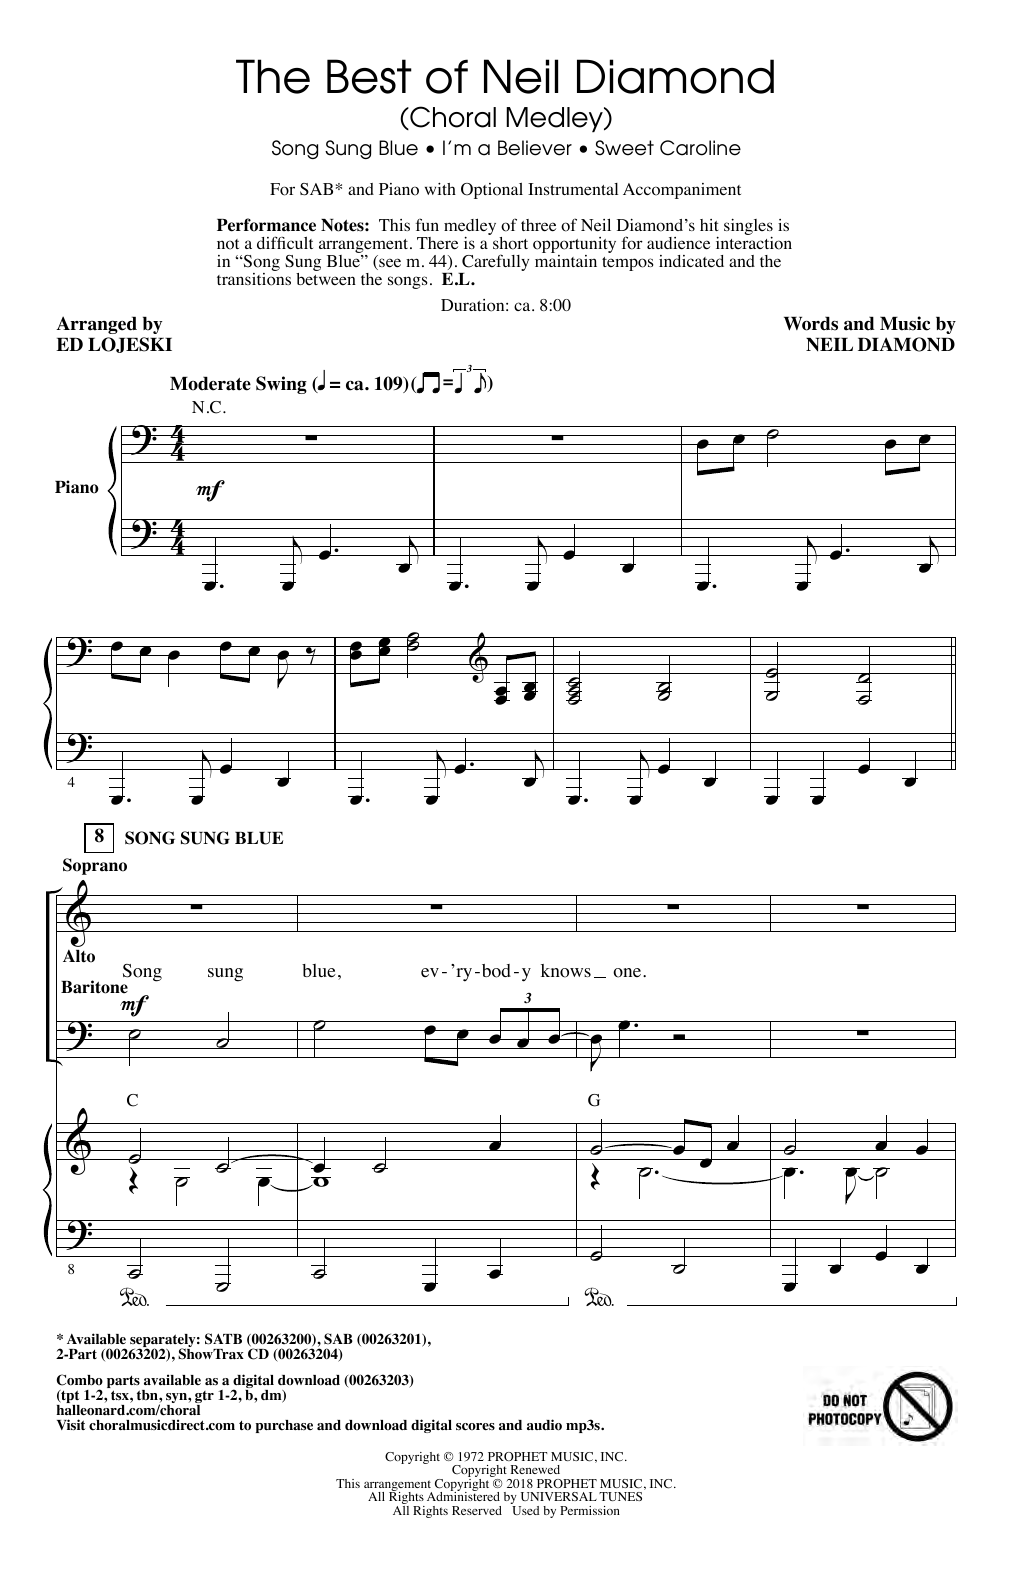 Neil Diamond The Best of Neil Diamond (arr. Ed Lojeski) sheet music notes and chords. Download Printable PDF.